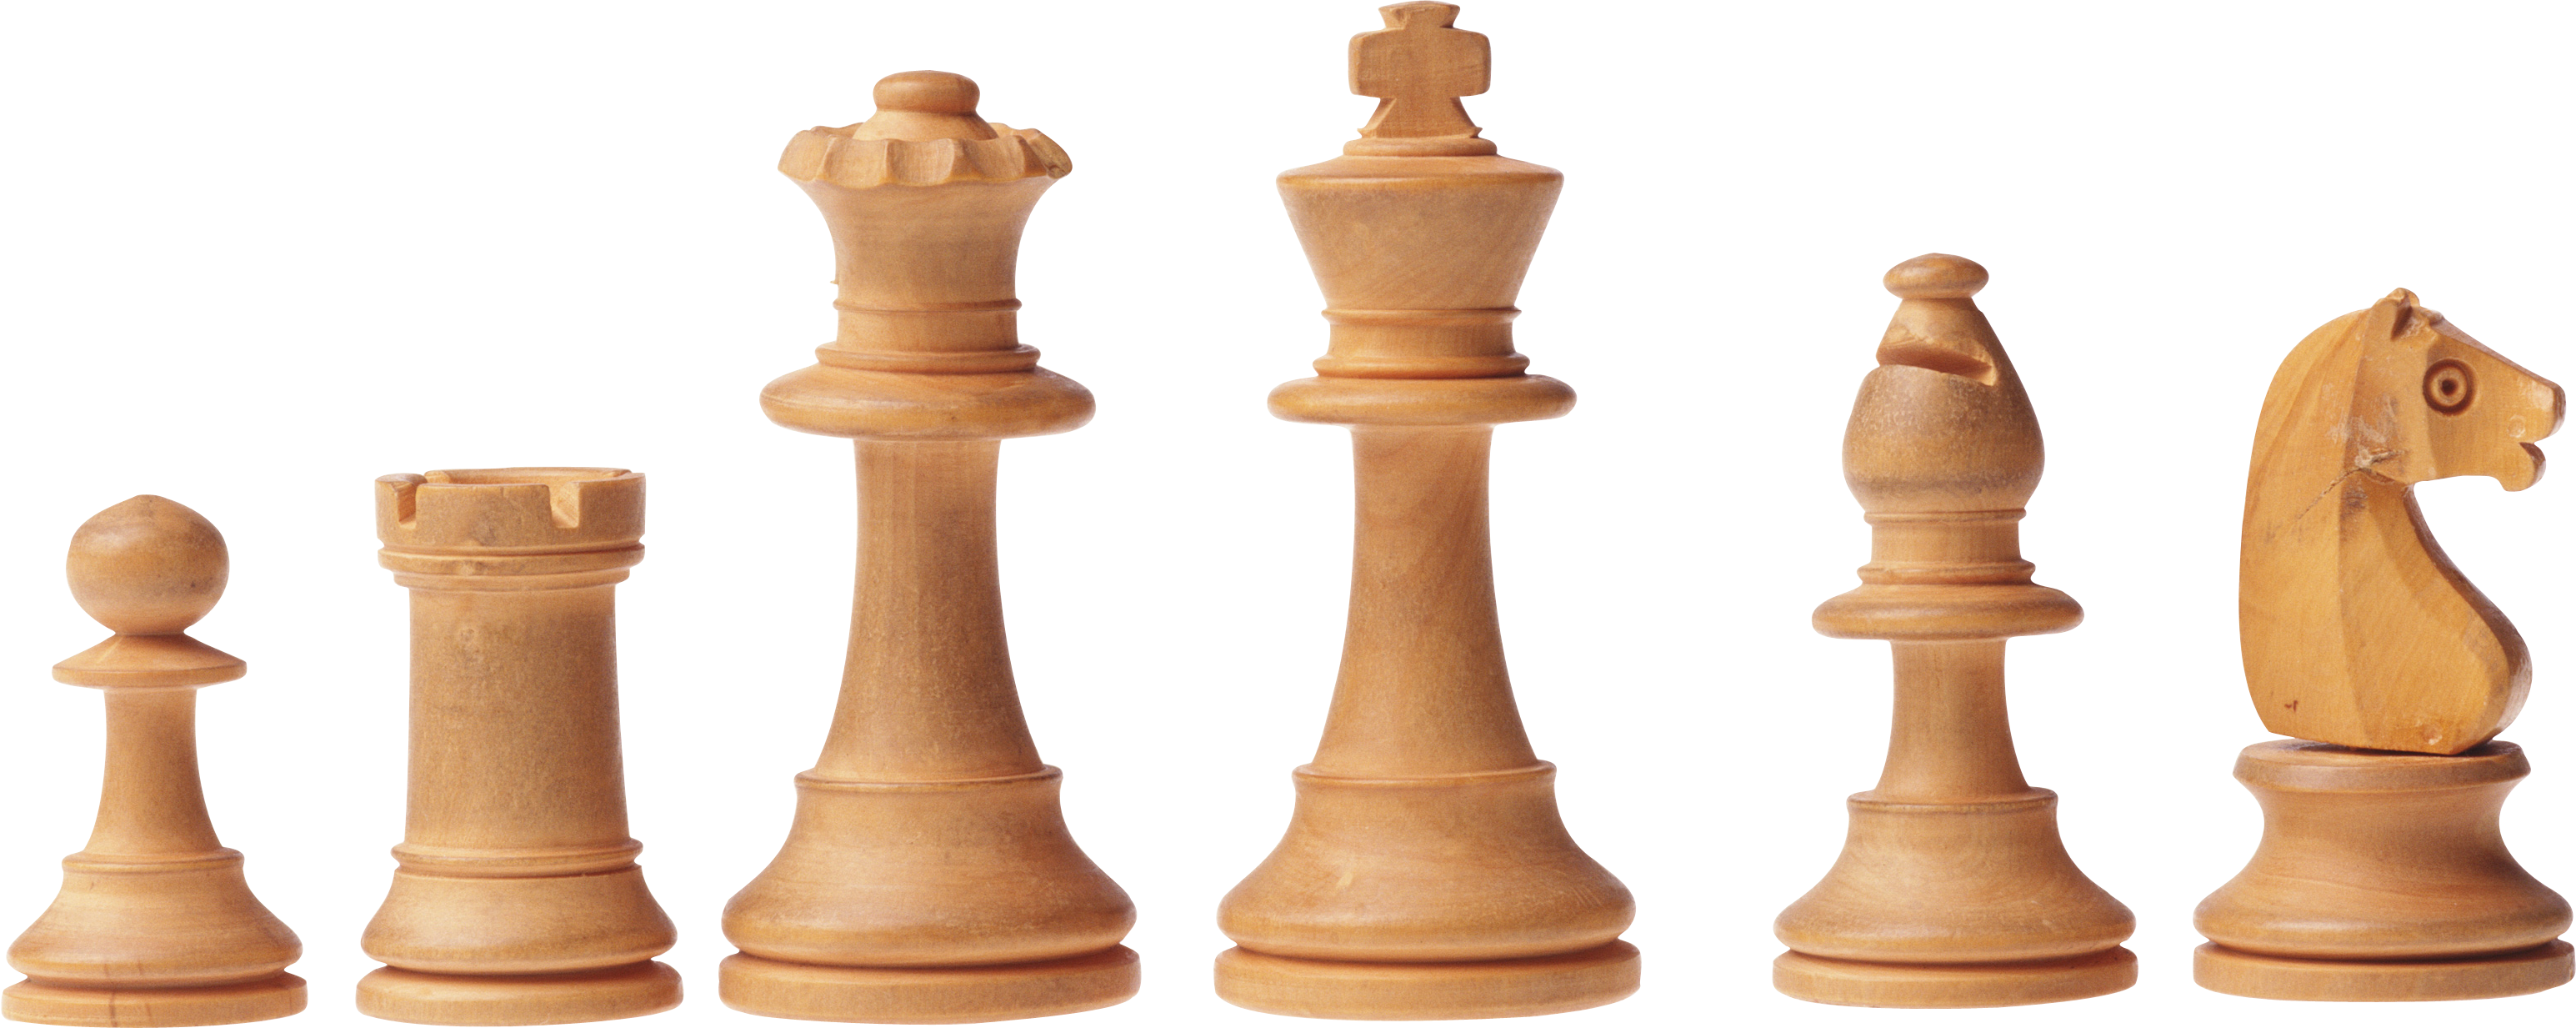 chess png image free download horse race clipart images horse clipart pics